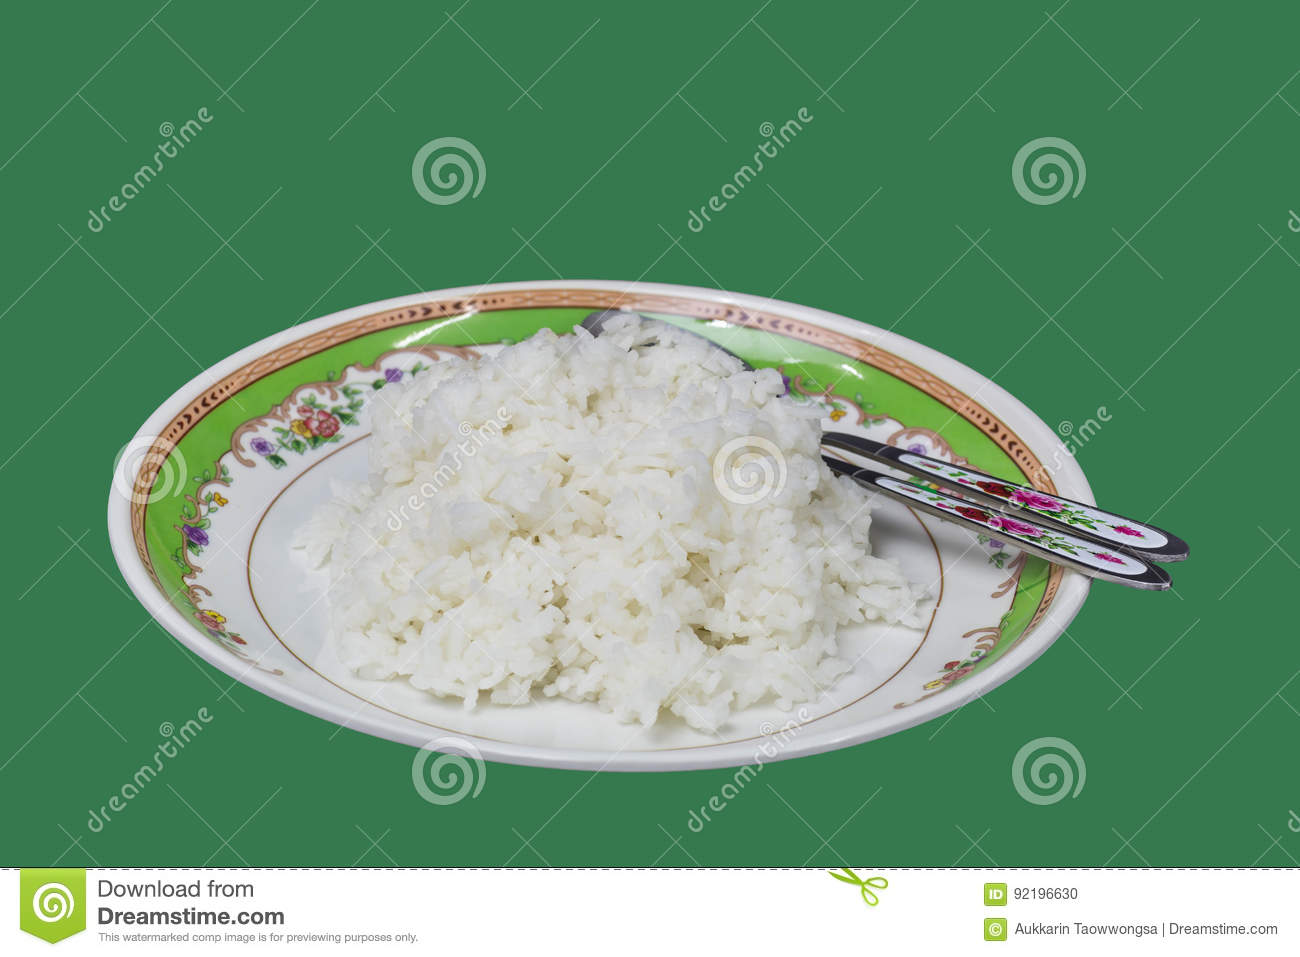 And have asian rice pattern dishes opinion, false